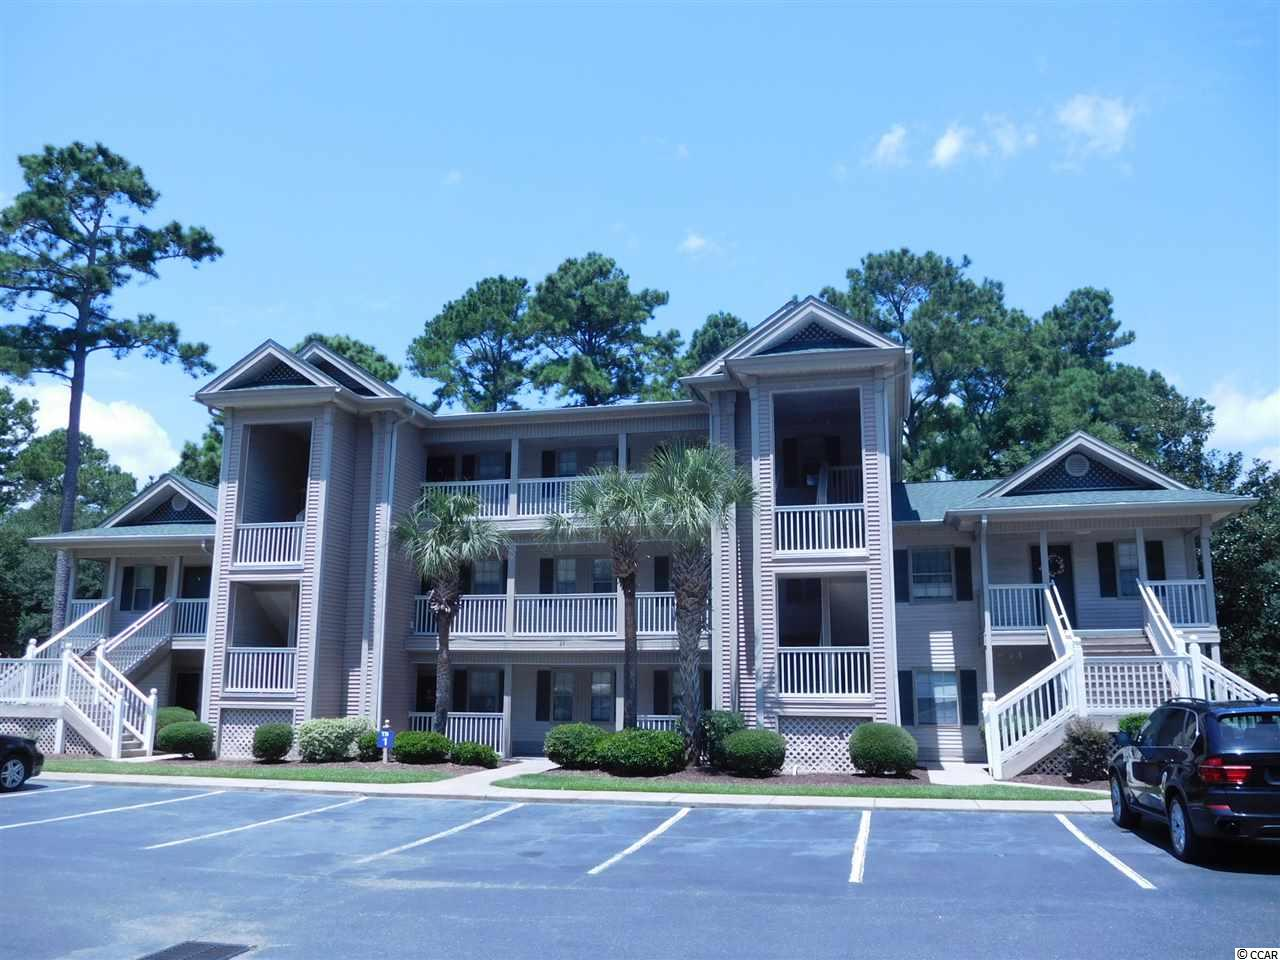 Located near the heart of Pawleys Island with easy access to shopping and dining. Public beaches and river access are a 5-10 minute drive. This condo is newly painted and is in move-in condition with new flooring and carpeting. The condo is sold fully furnished and includes all appliances. The screened porch overlooks mature hardwoods for a relaxing nature buffer. There is outside storage for your bike or beach items. Square footage is approximate and not guaranteed. Buyer is responsible for verification.